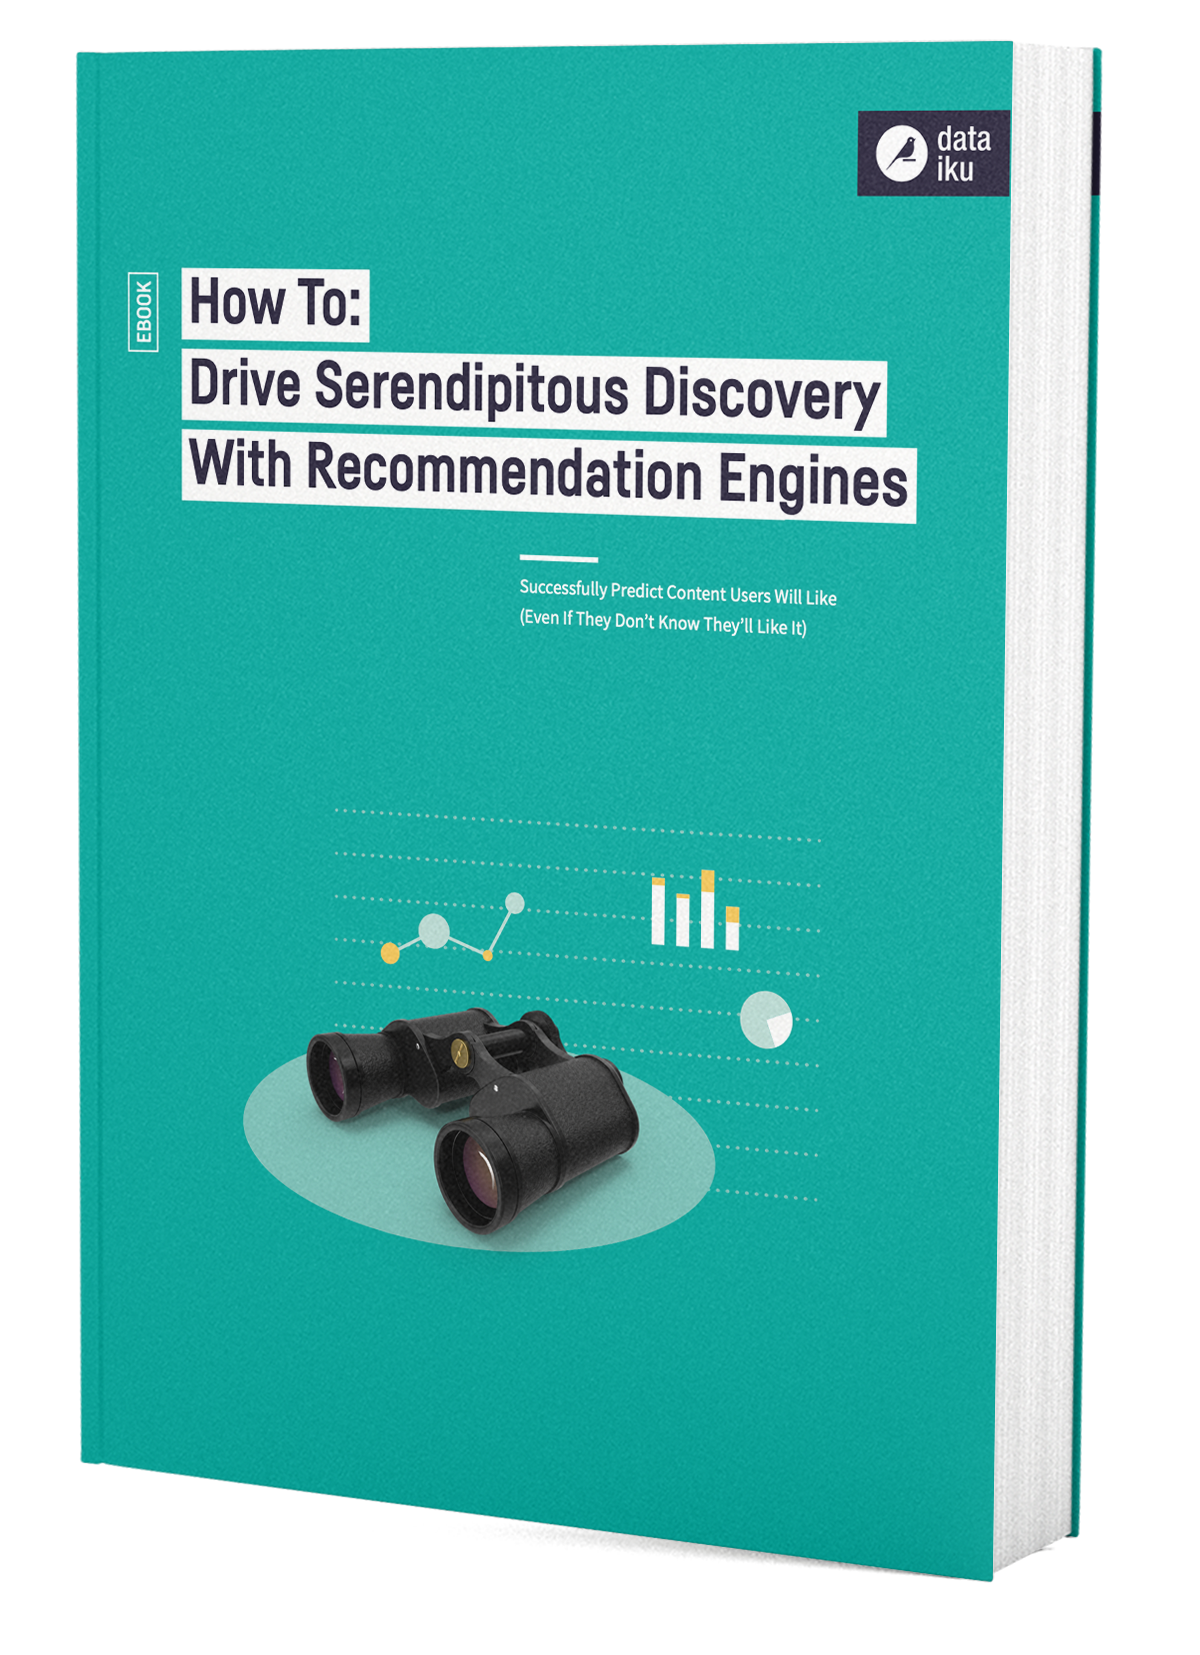 DKU-DATAIKU-EBOOK_COVER-WEB-HOW_TO_DRIVE_SERENDIPITOUS_DISCOVERY_WITH_RECOMMENDATION_ENGINES-BAT_210519